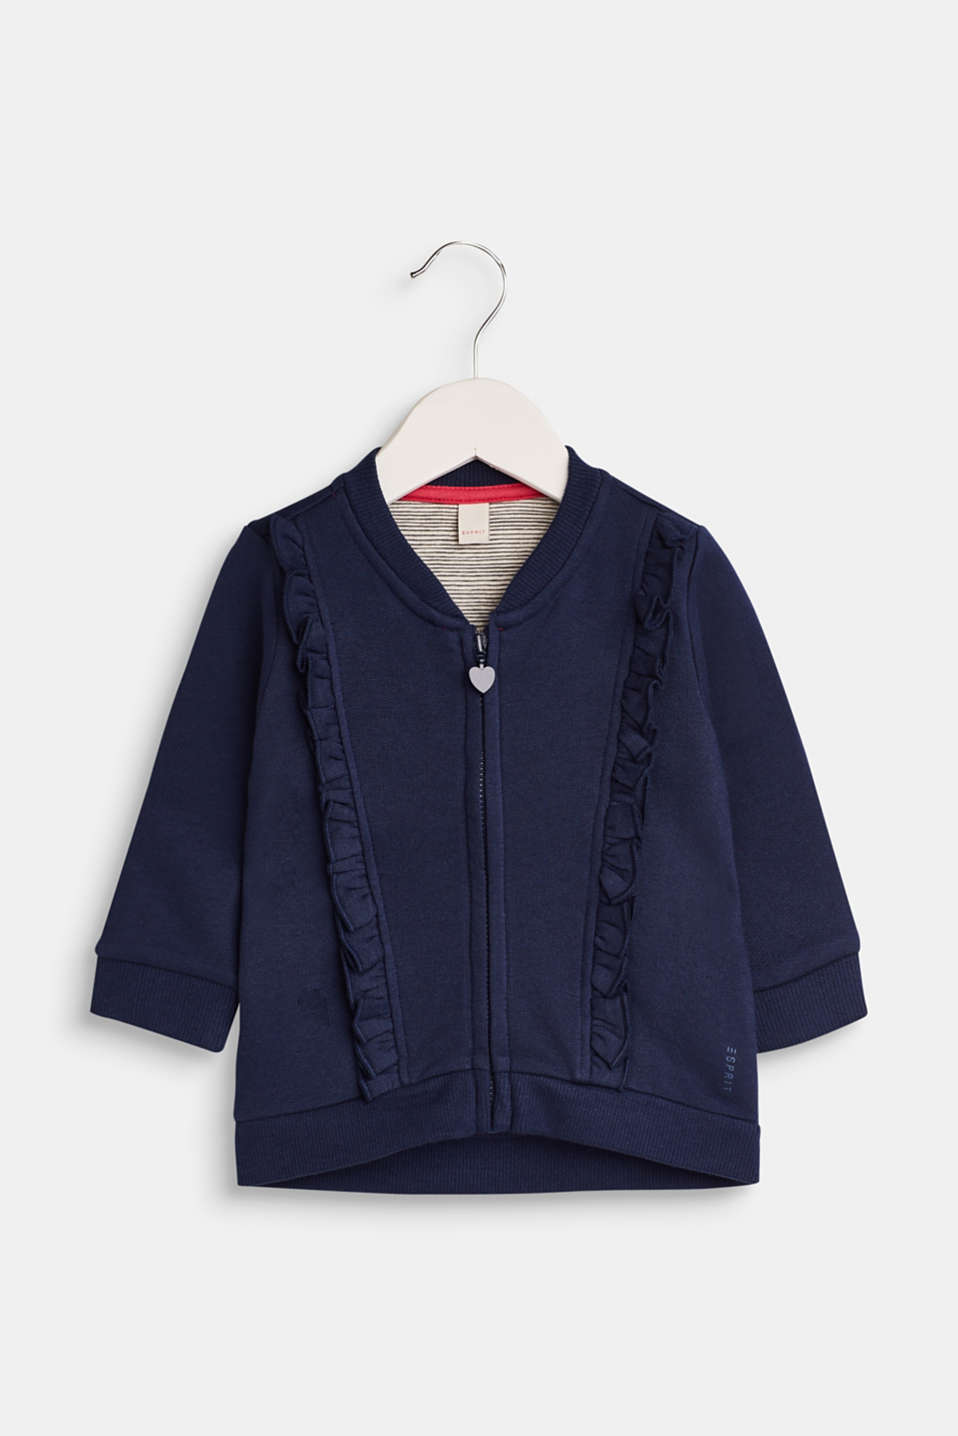 Esprit - Sweatshirt cardigan with frilled details, 100% cotton